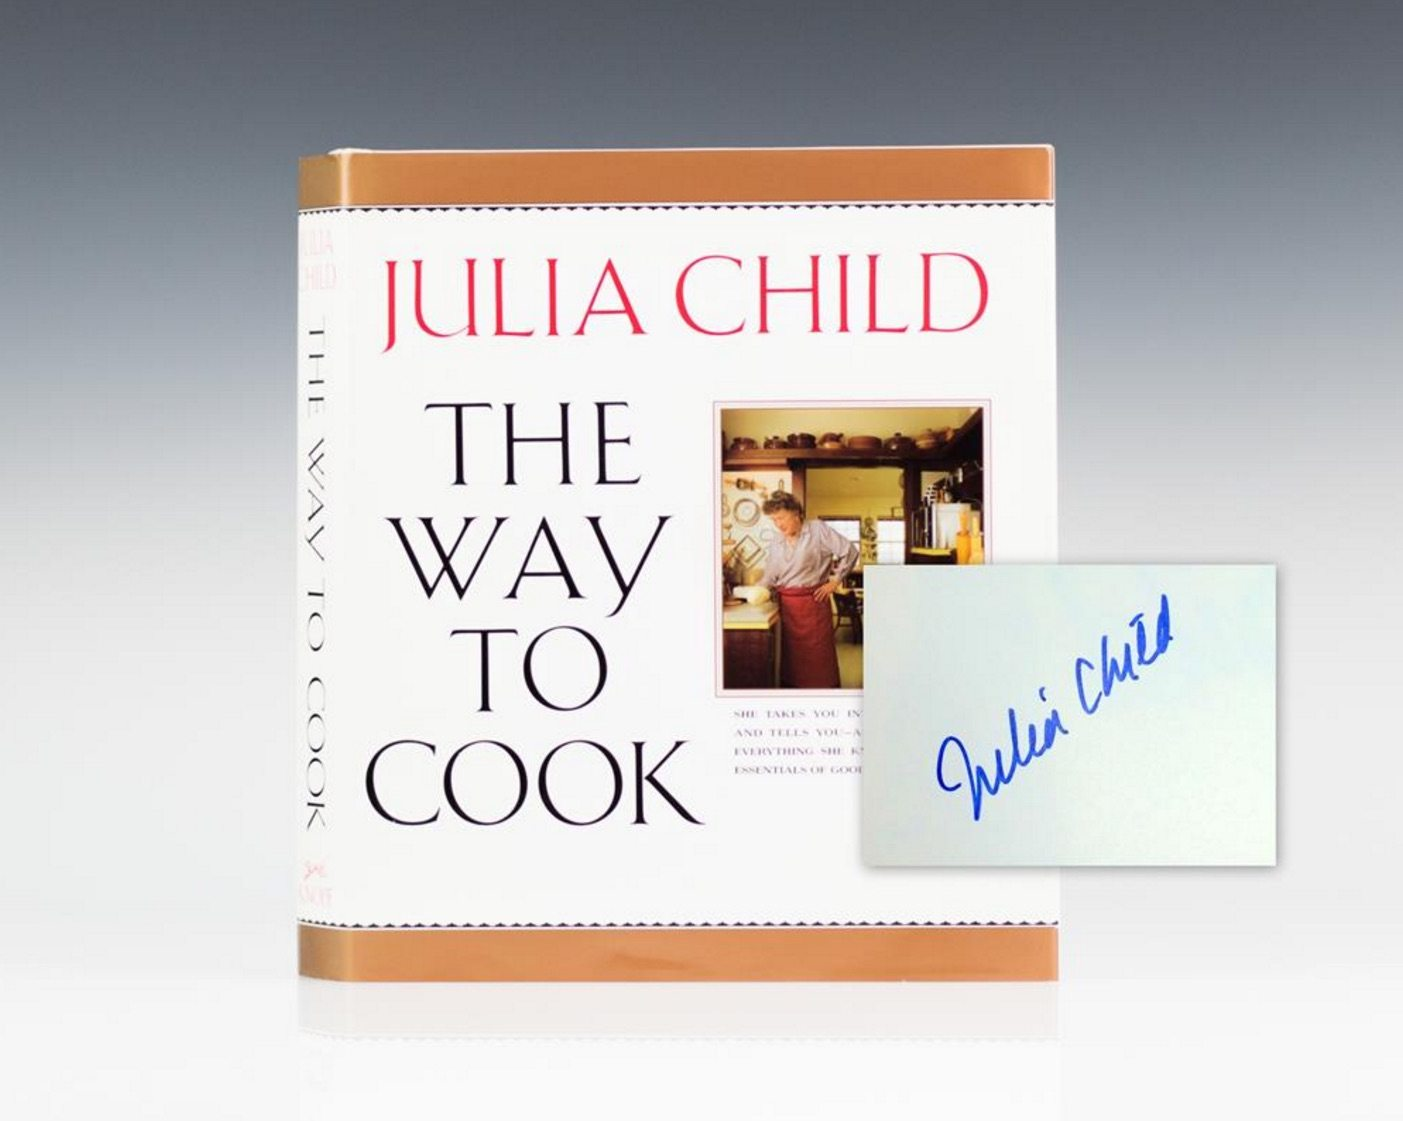 Julia Child First Edition rare book